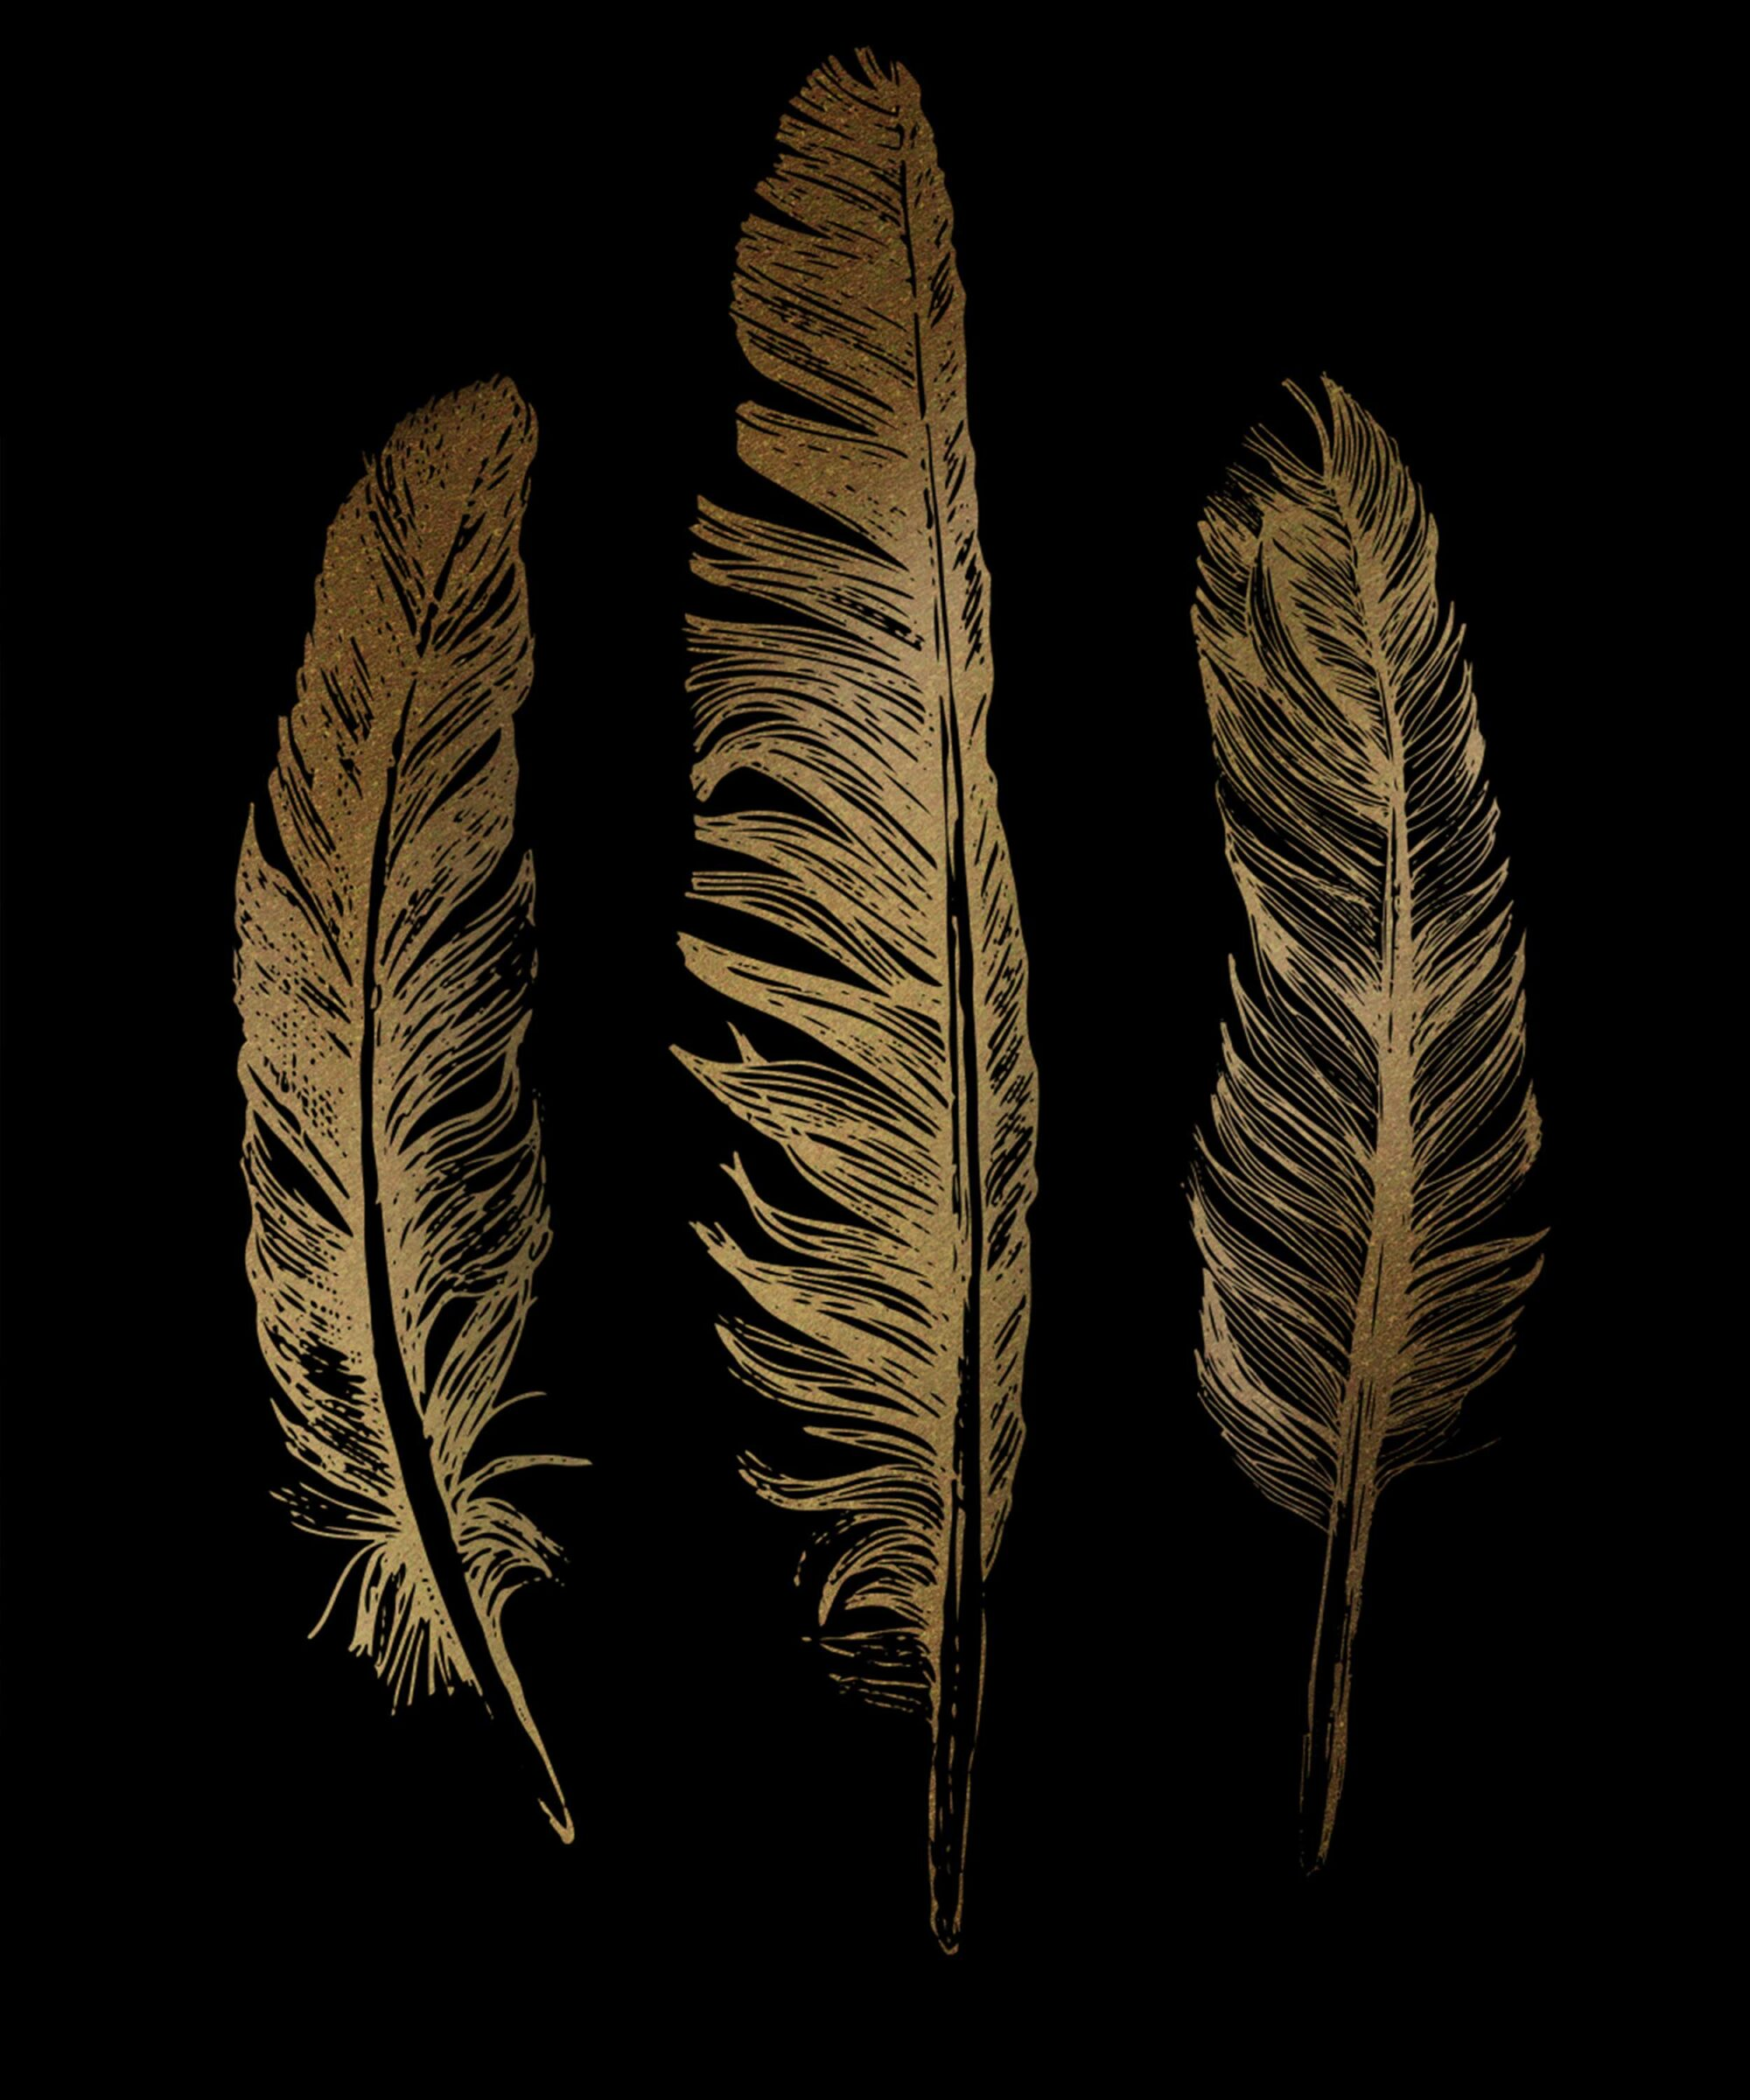 three golden feathers on a black background